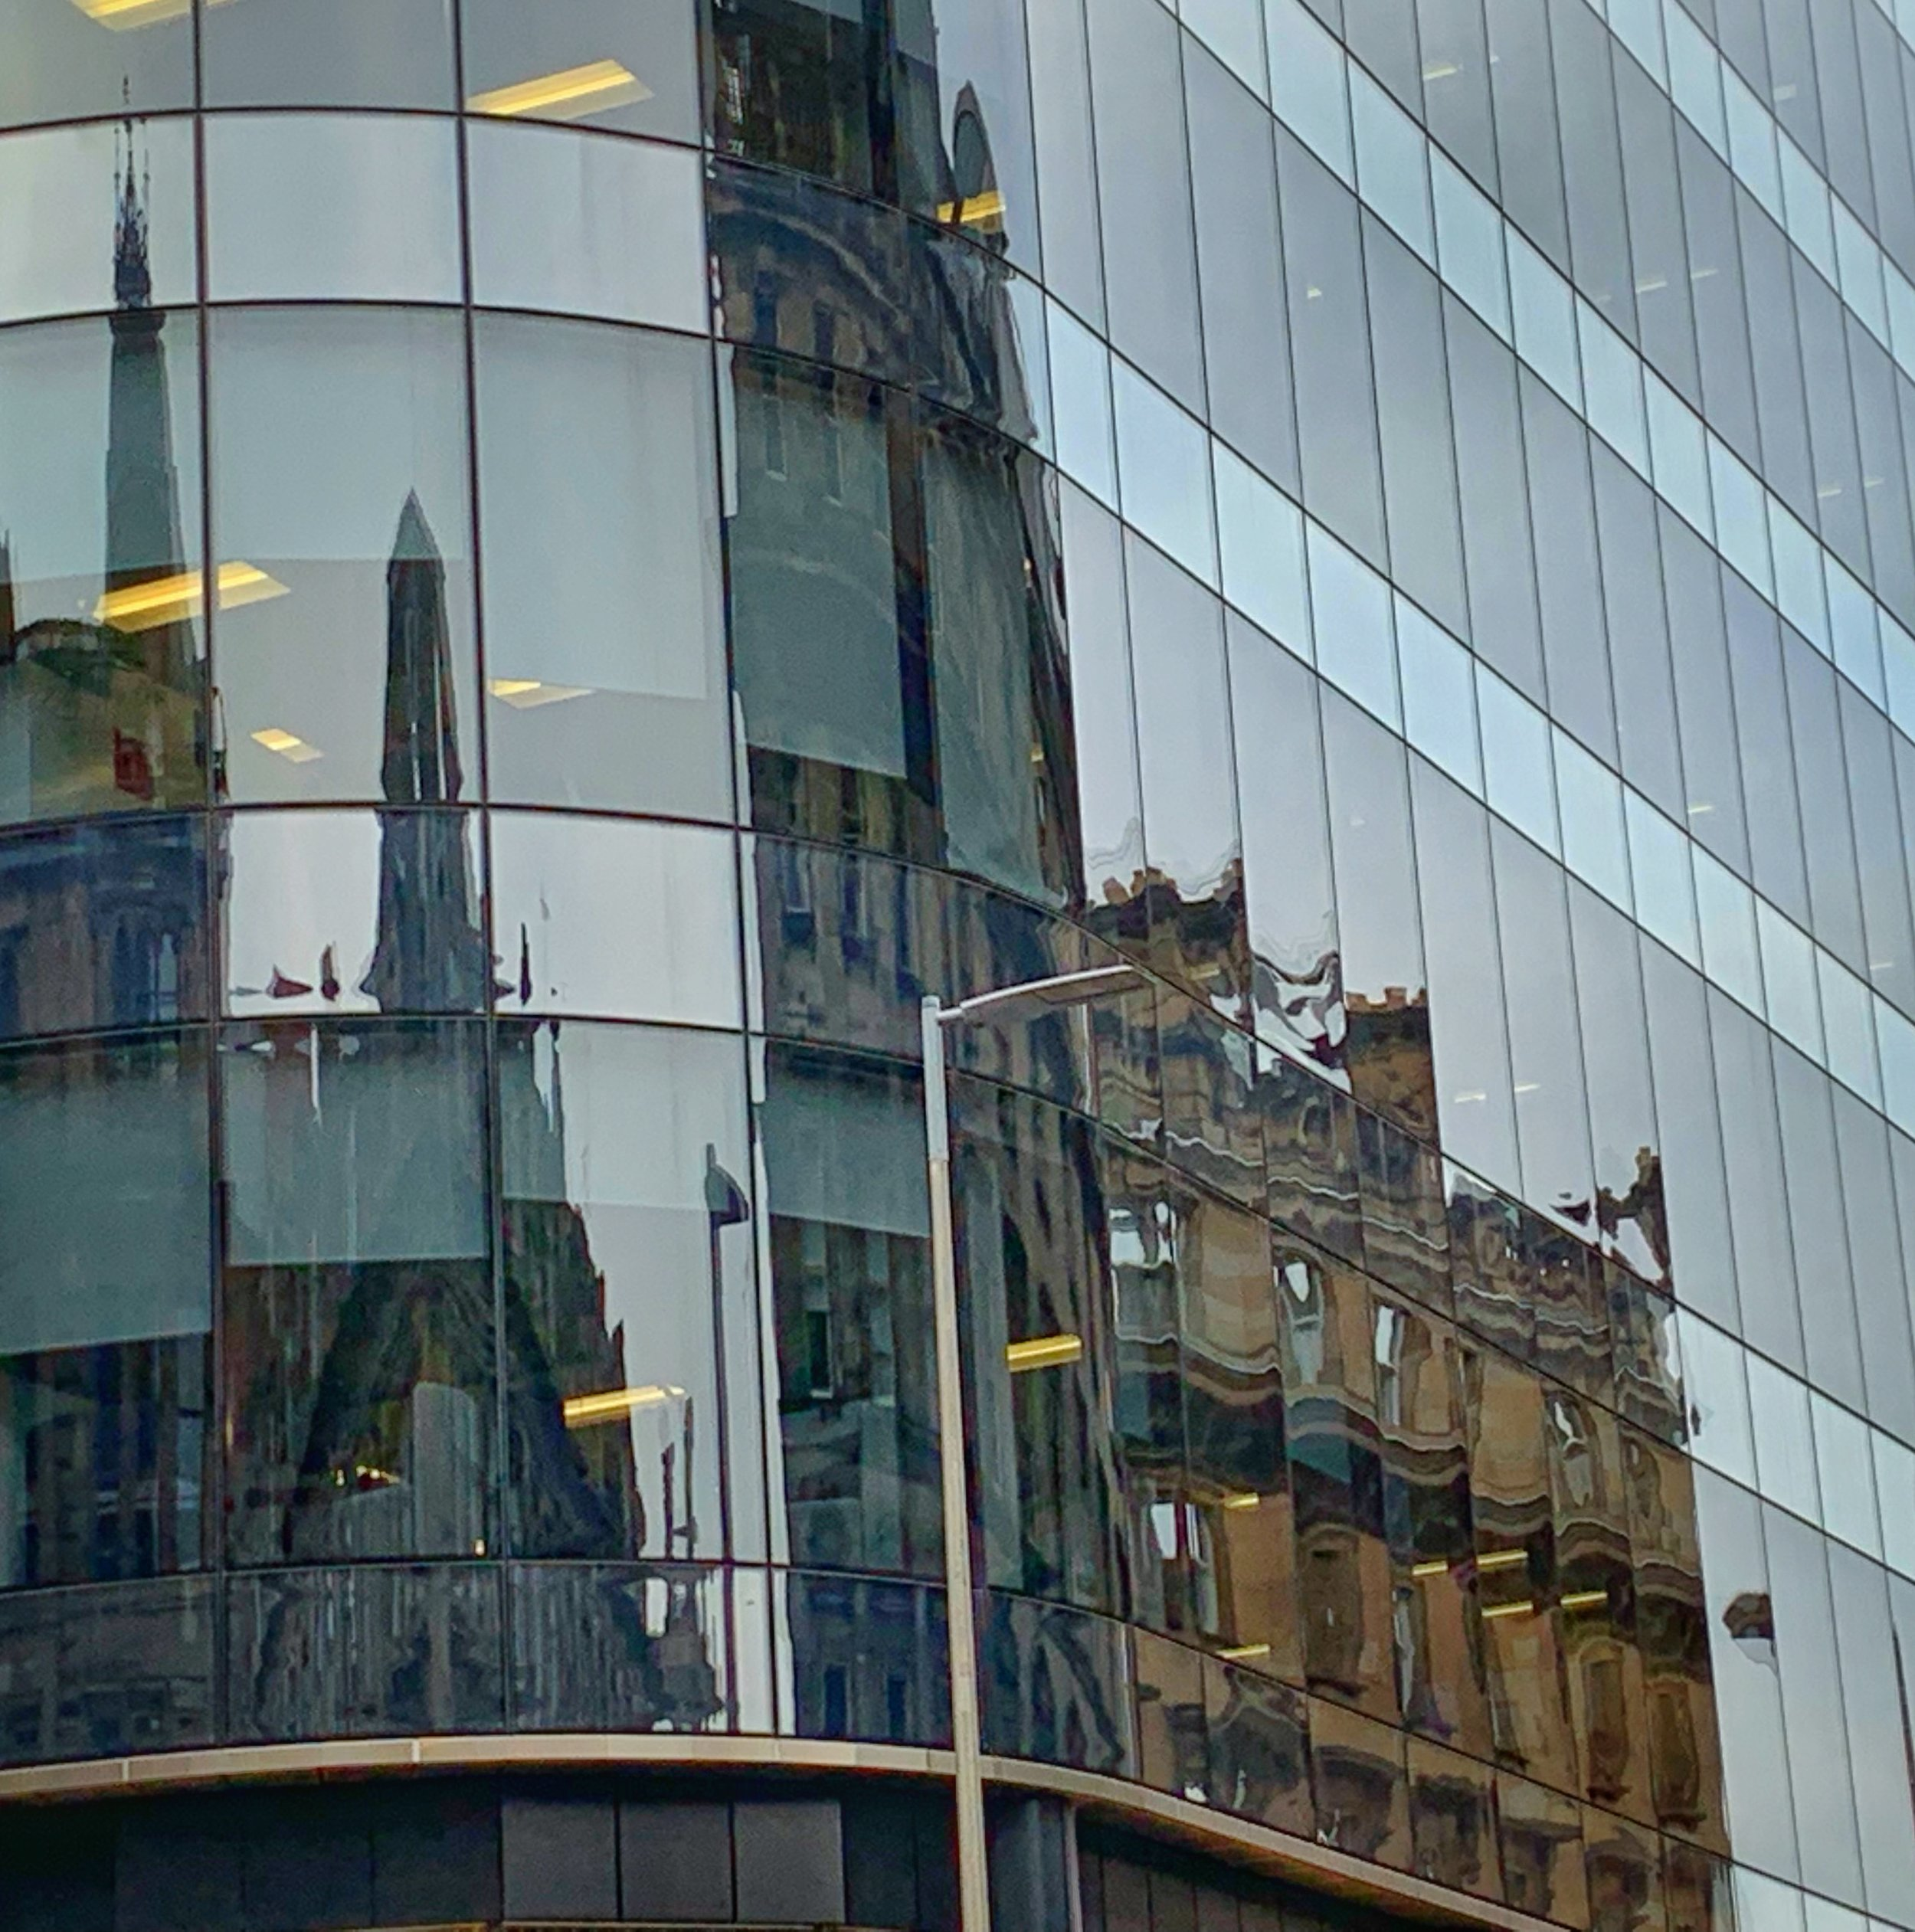 Old architecture reflected in new. A fitting metaphor for my sojourn. Glasgow, Scotland. photo by anne richardson